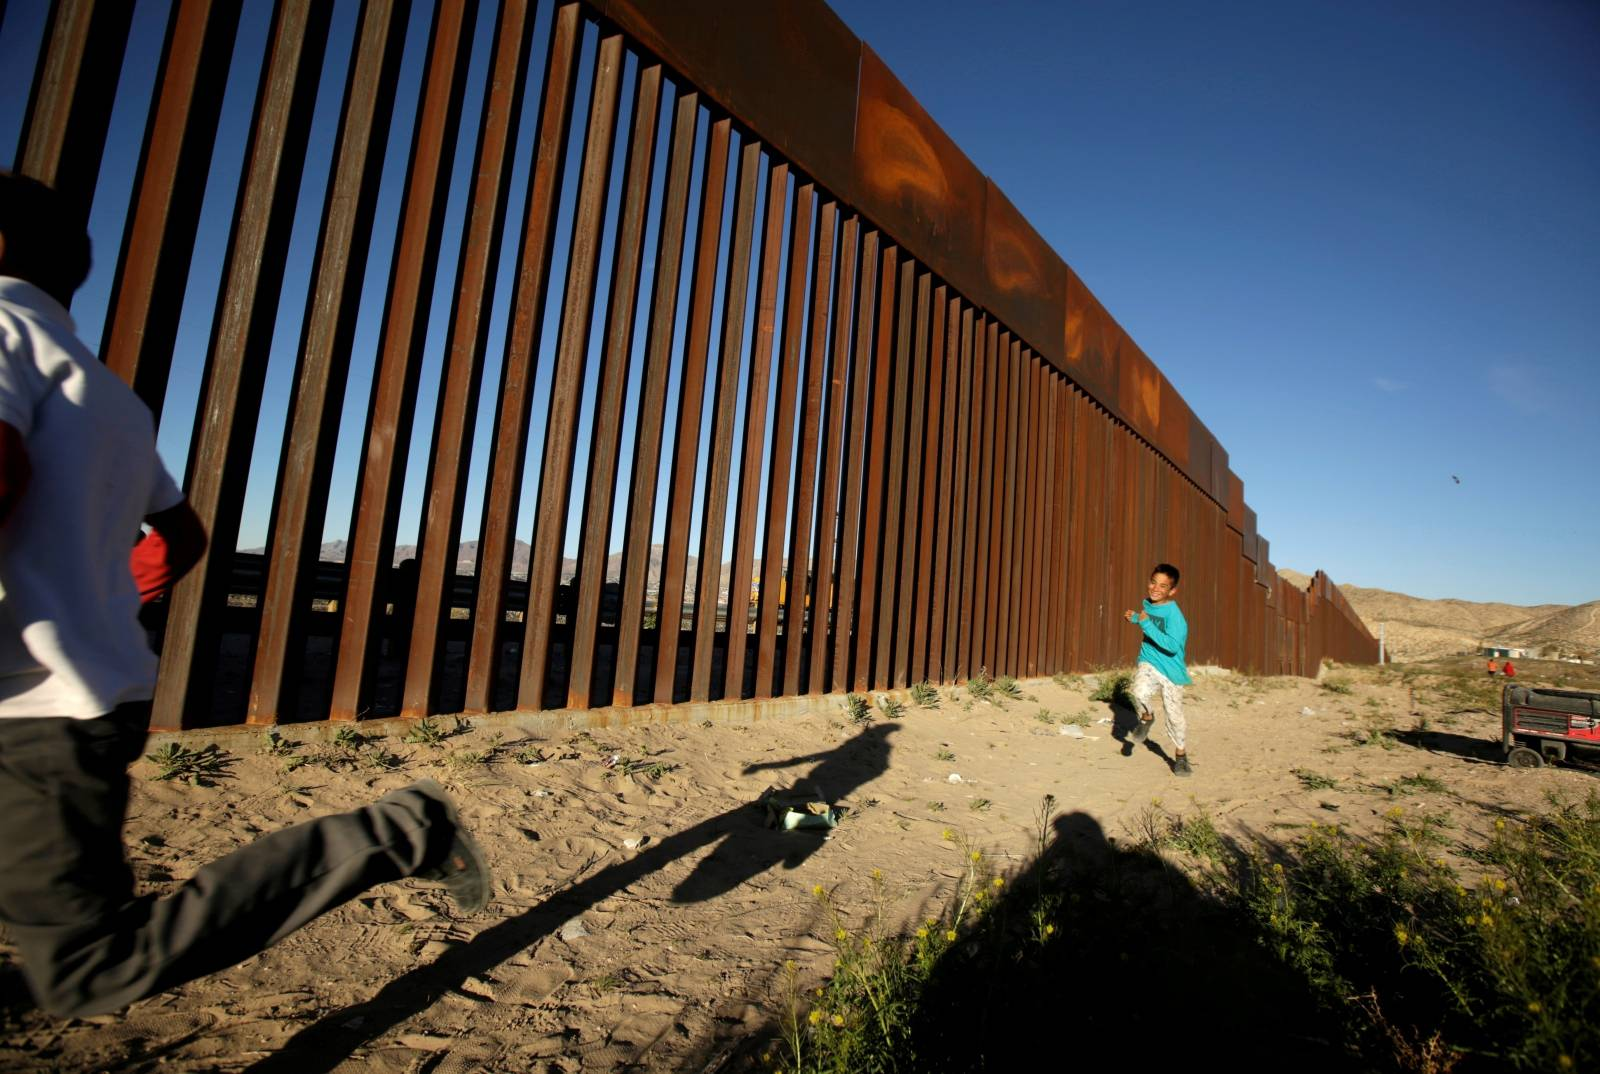 FILE PHOTO: Children run along the border fence between Mexico and the United States during an inter-religious service against U.S. President Donald Trump's border wall, in Ciudad Juarez